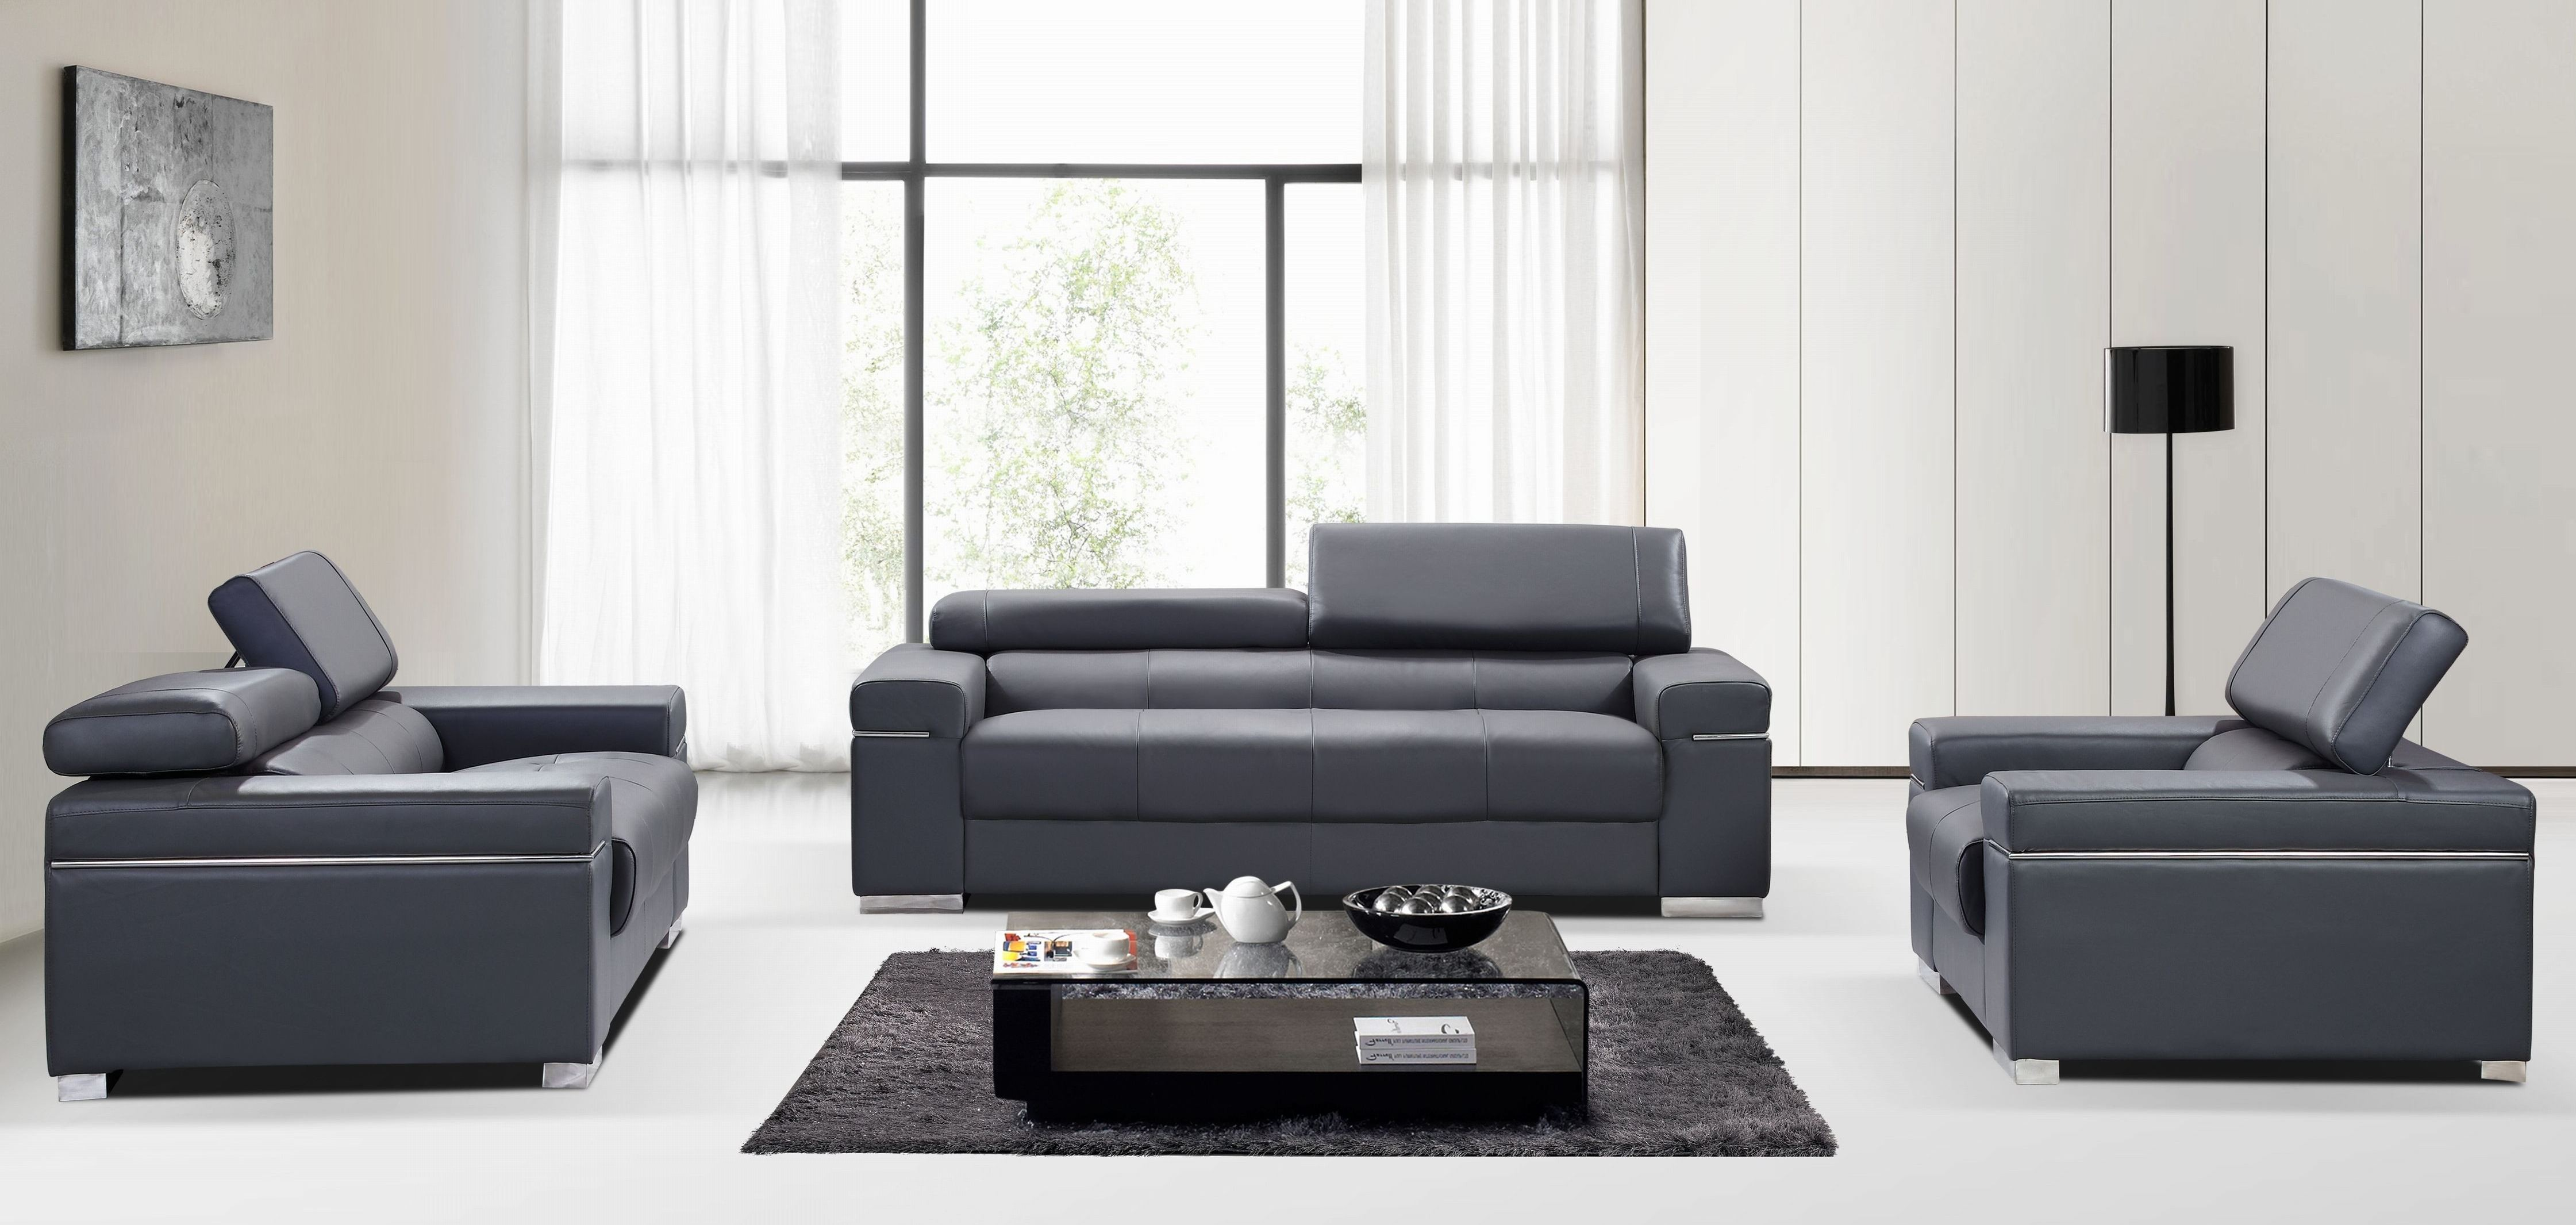 Soho grey leather living room set from j m 176551113 s gr for Gray leather living room furniture